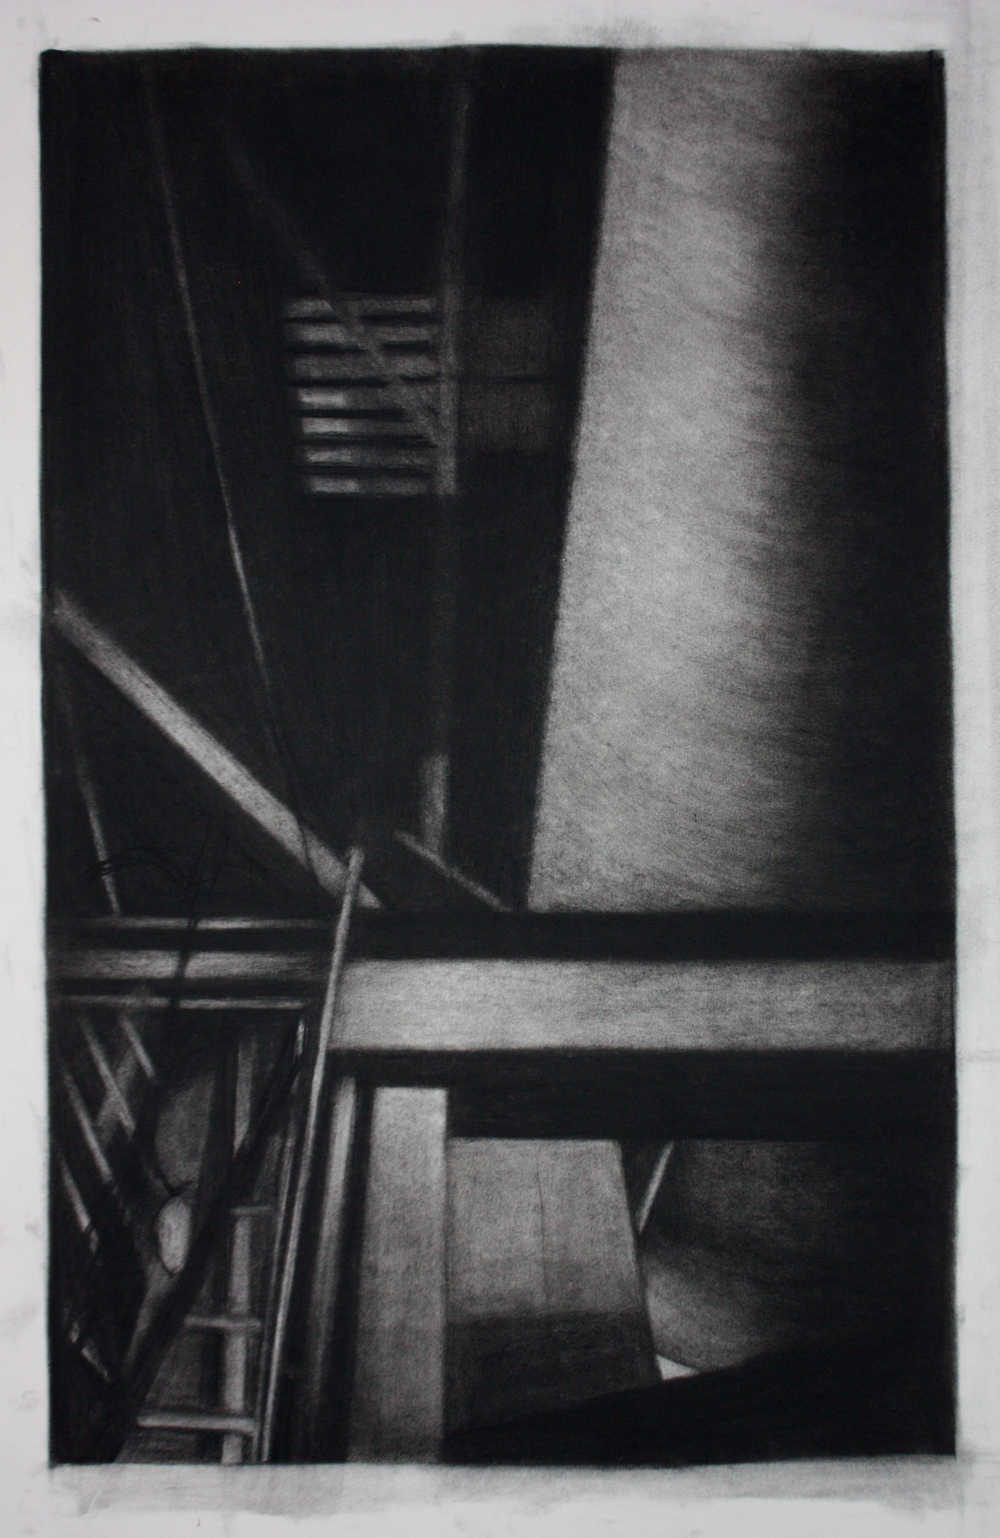 Detroit Series 001, Charcoal on paper, 71.5x53cm